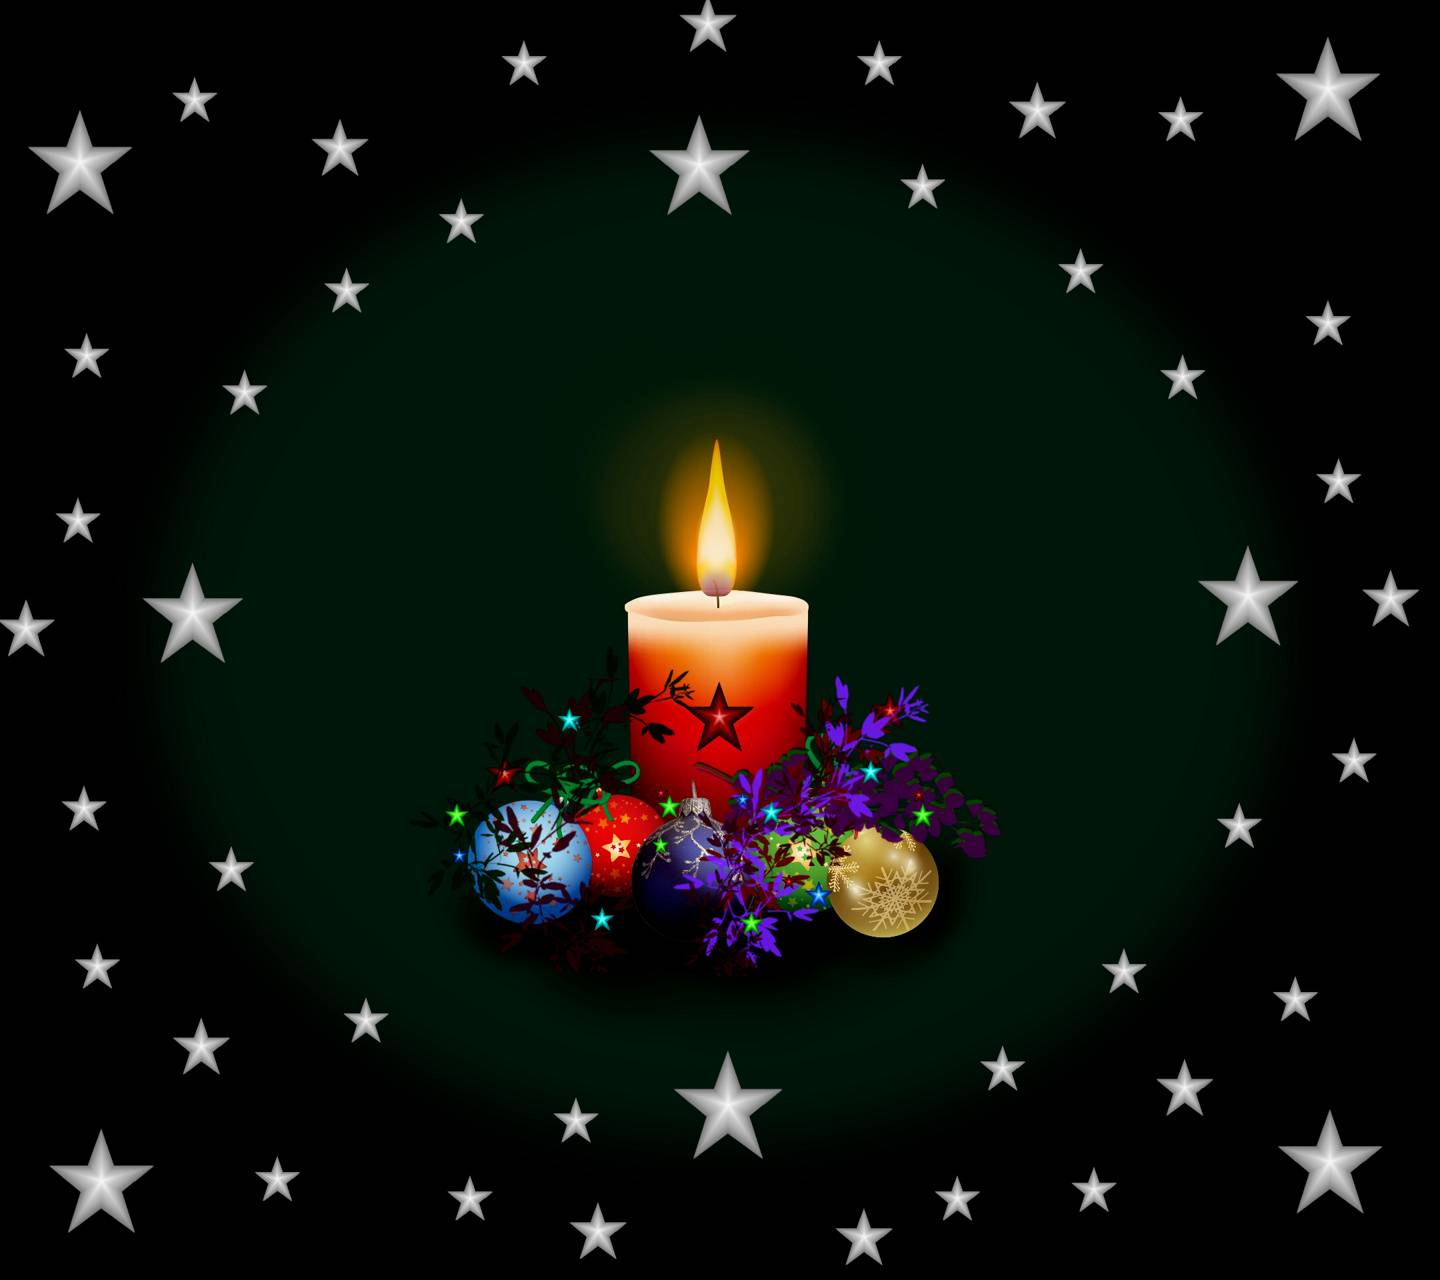 Candle Light 7